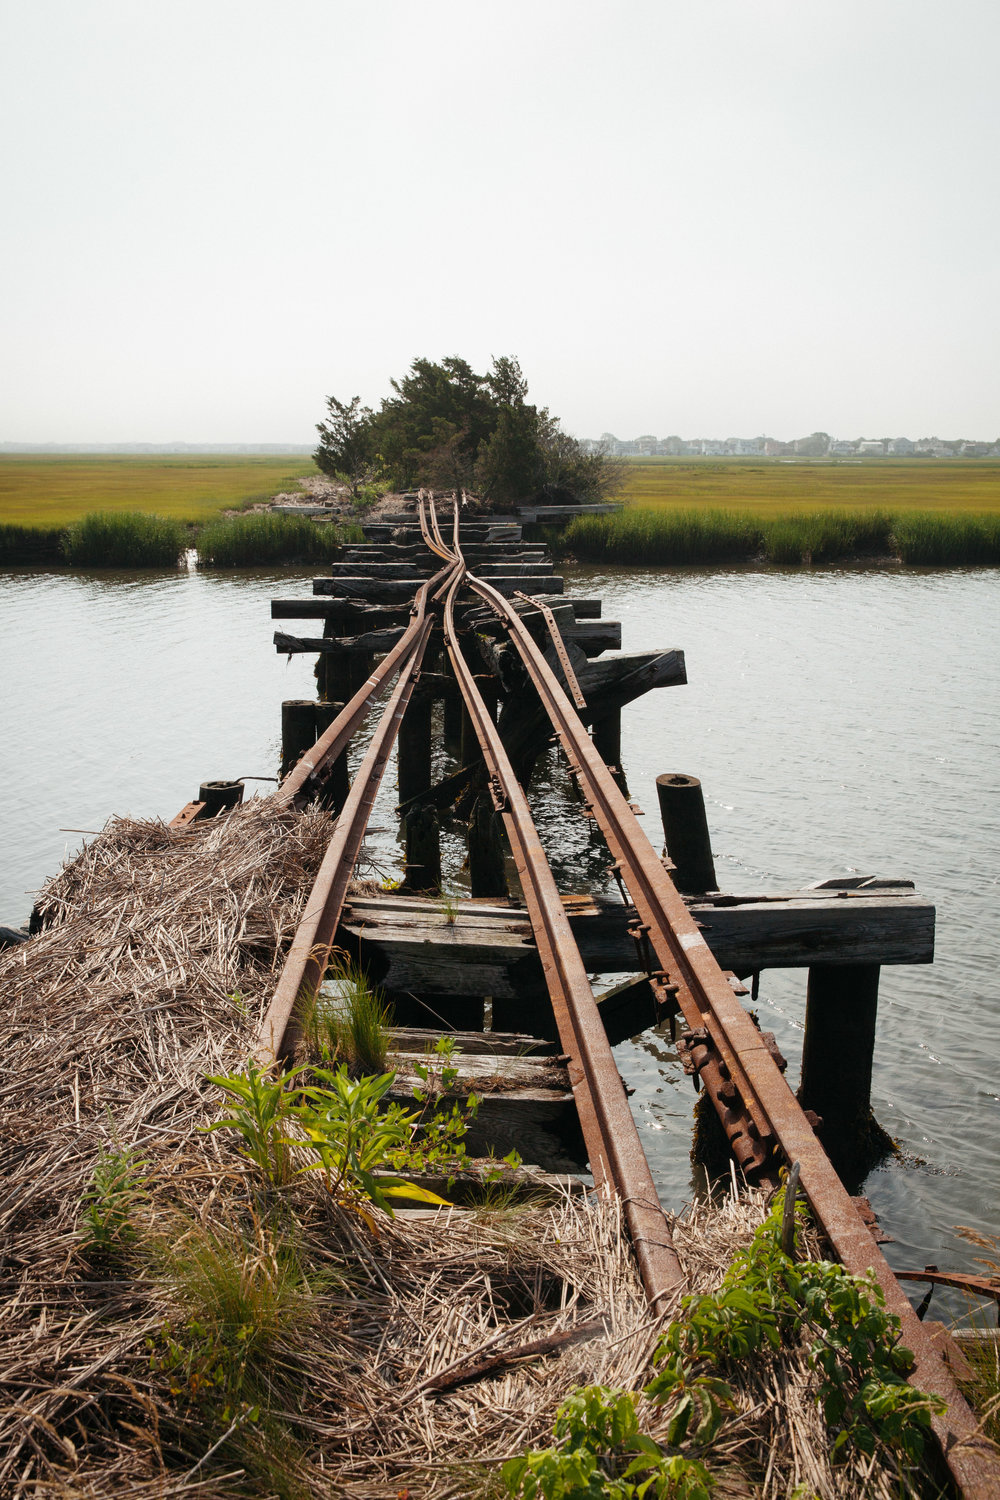 A view from the old Baltimore & Eastern rail line going into Ocean City, New Jersey.